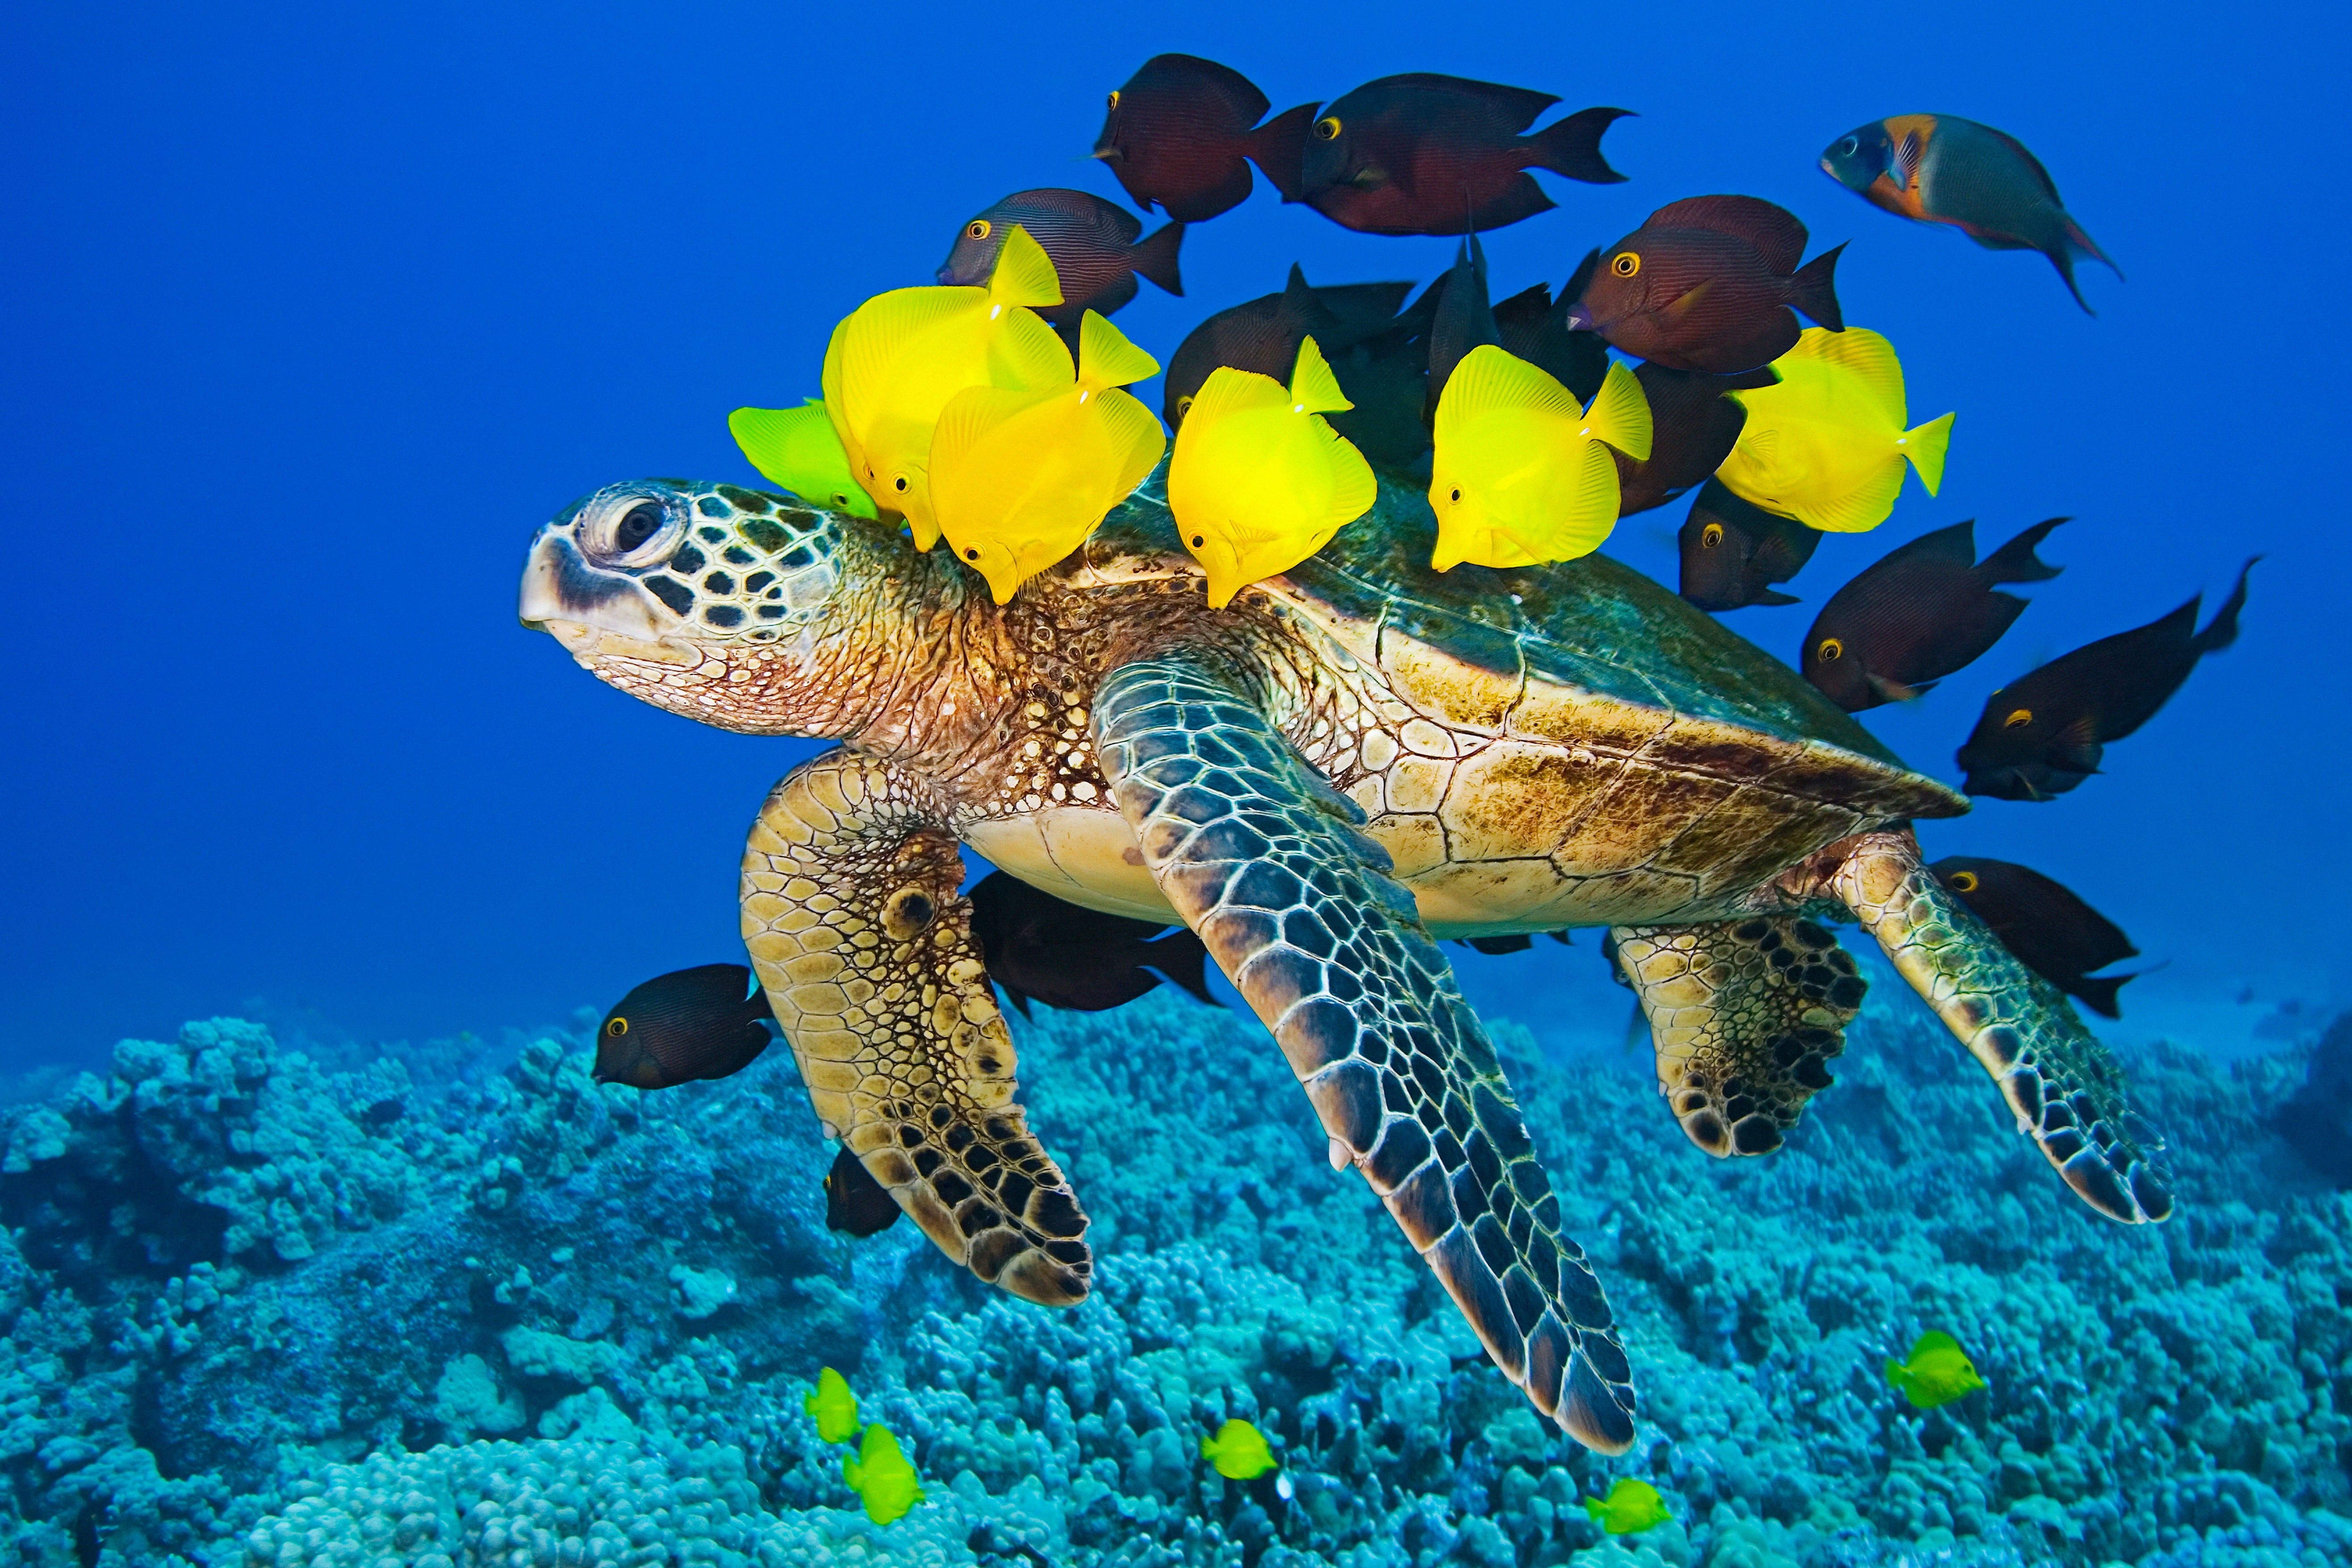 A Sea Turtle swims through the ocean, surrounded by fish